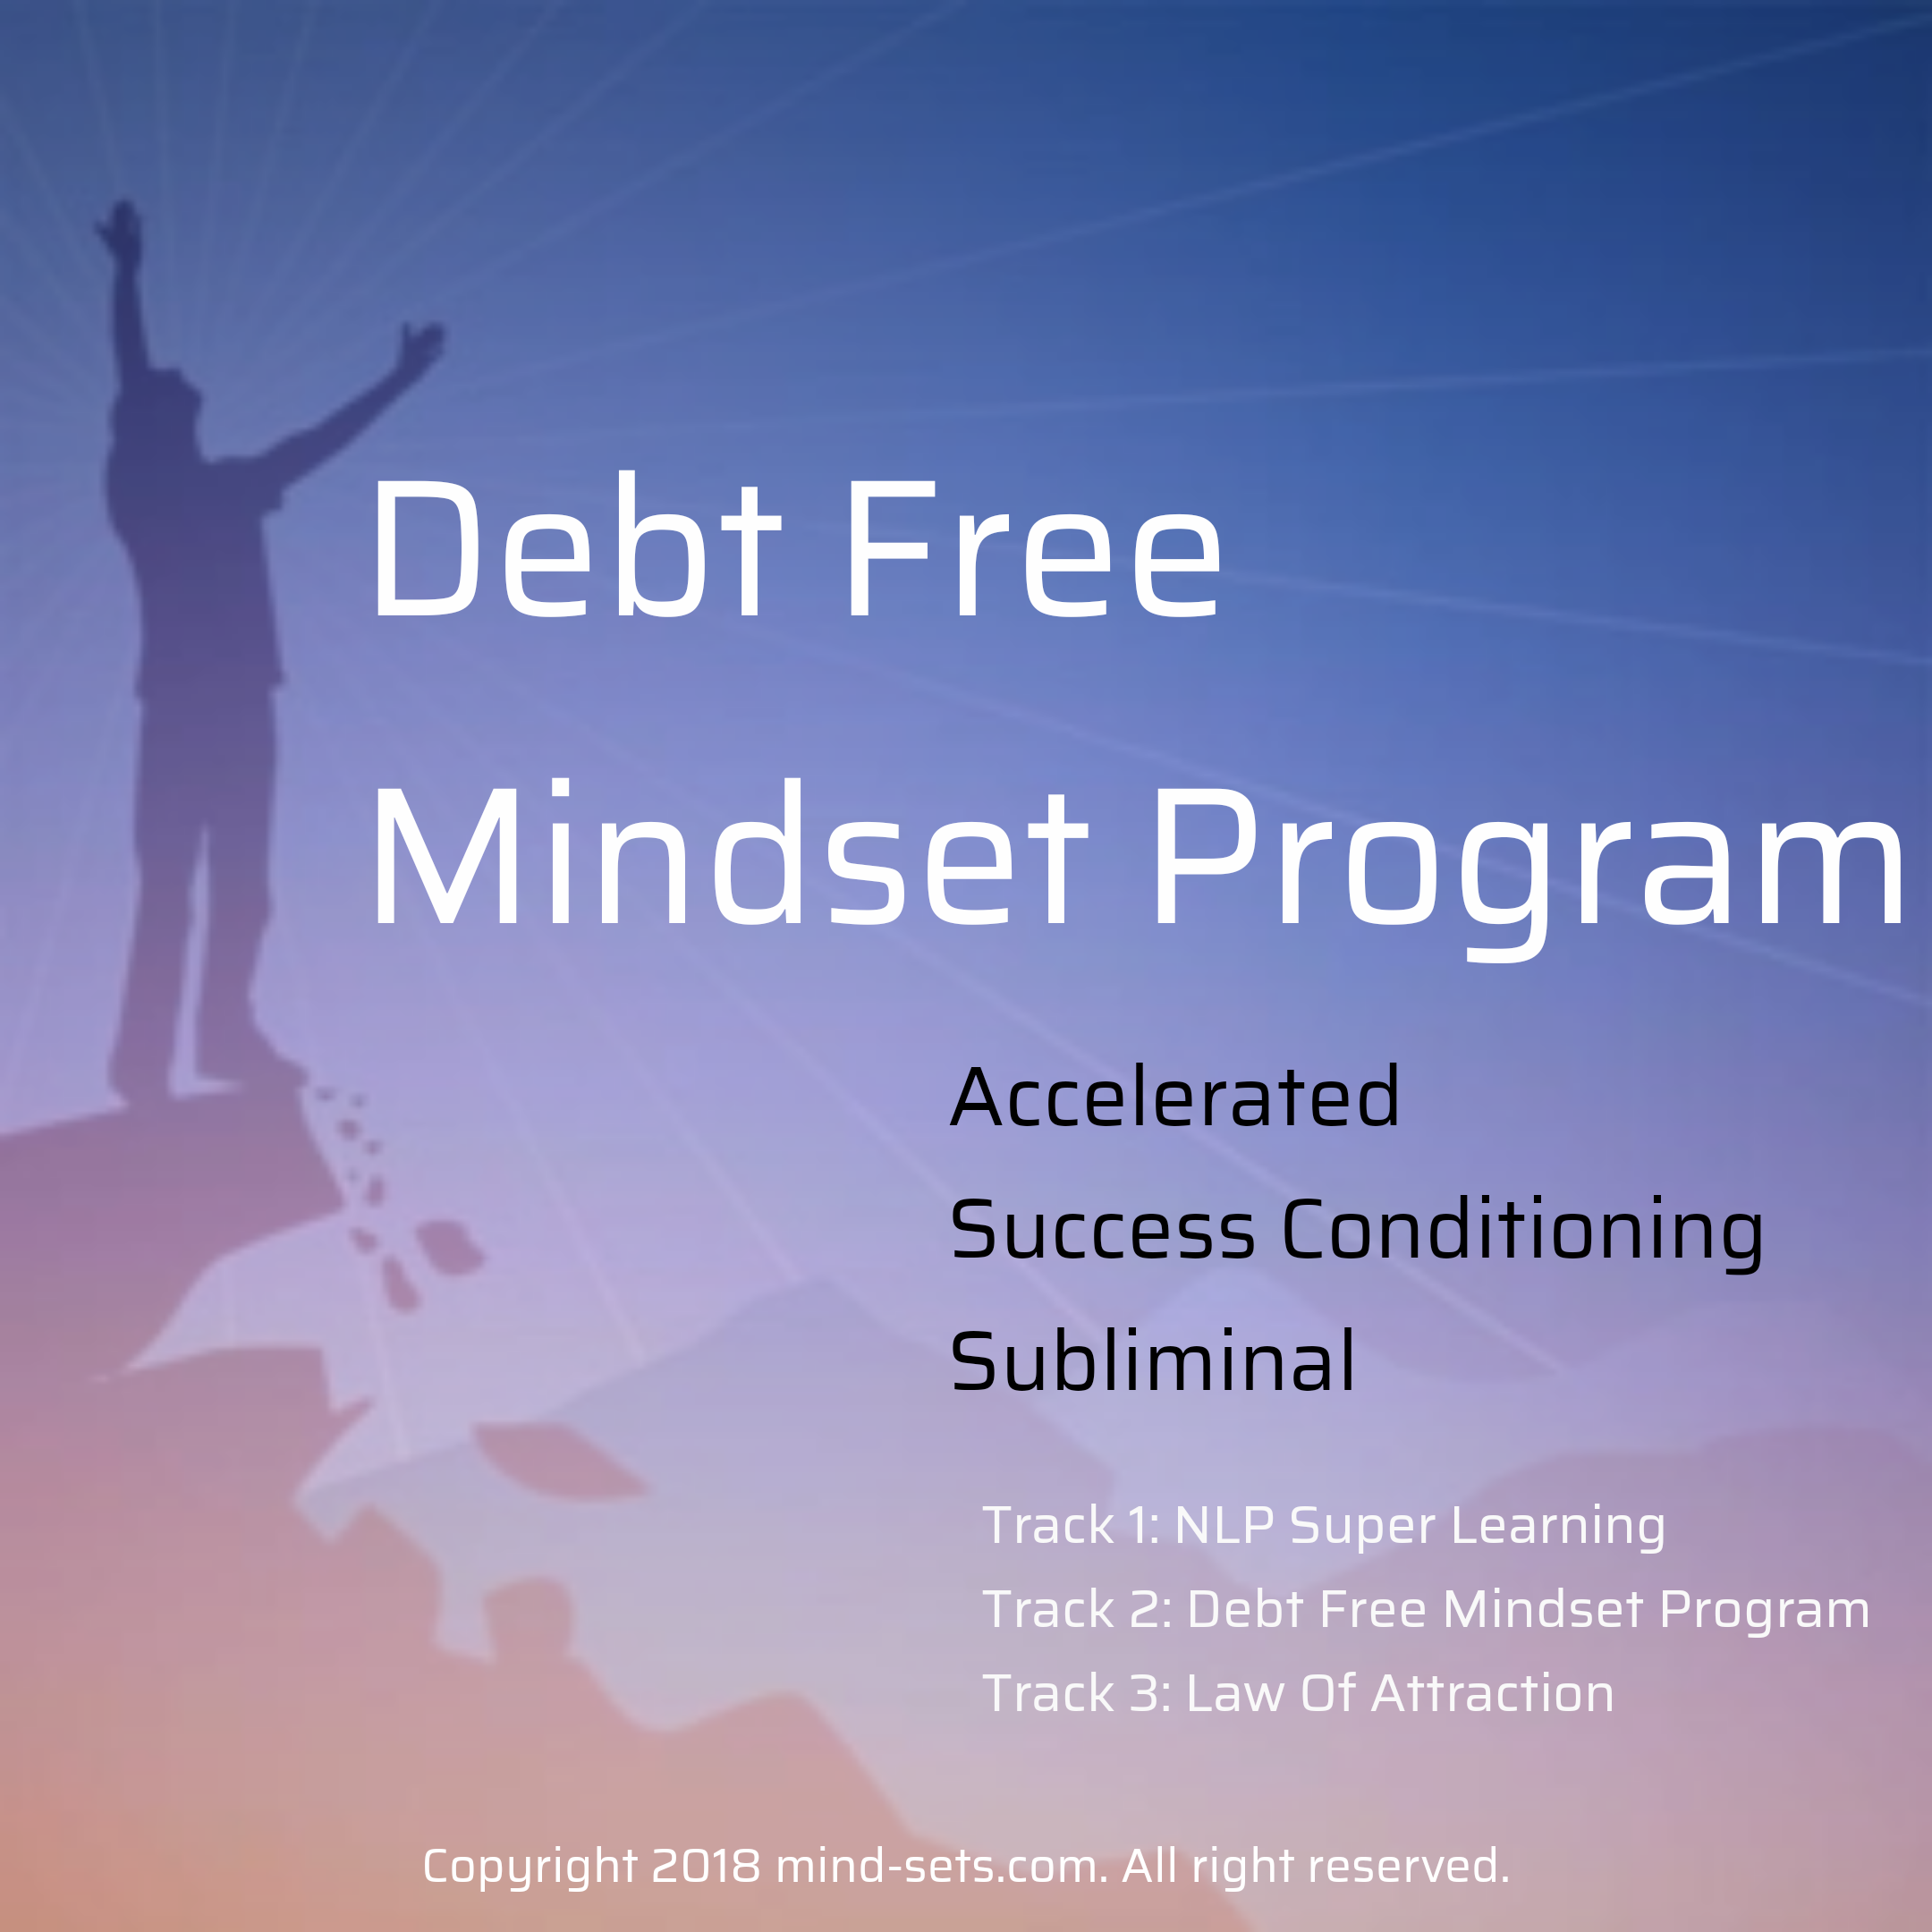 Debt Free Mindset Program